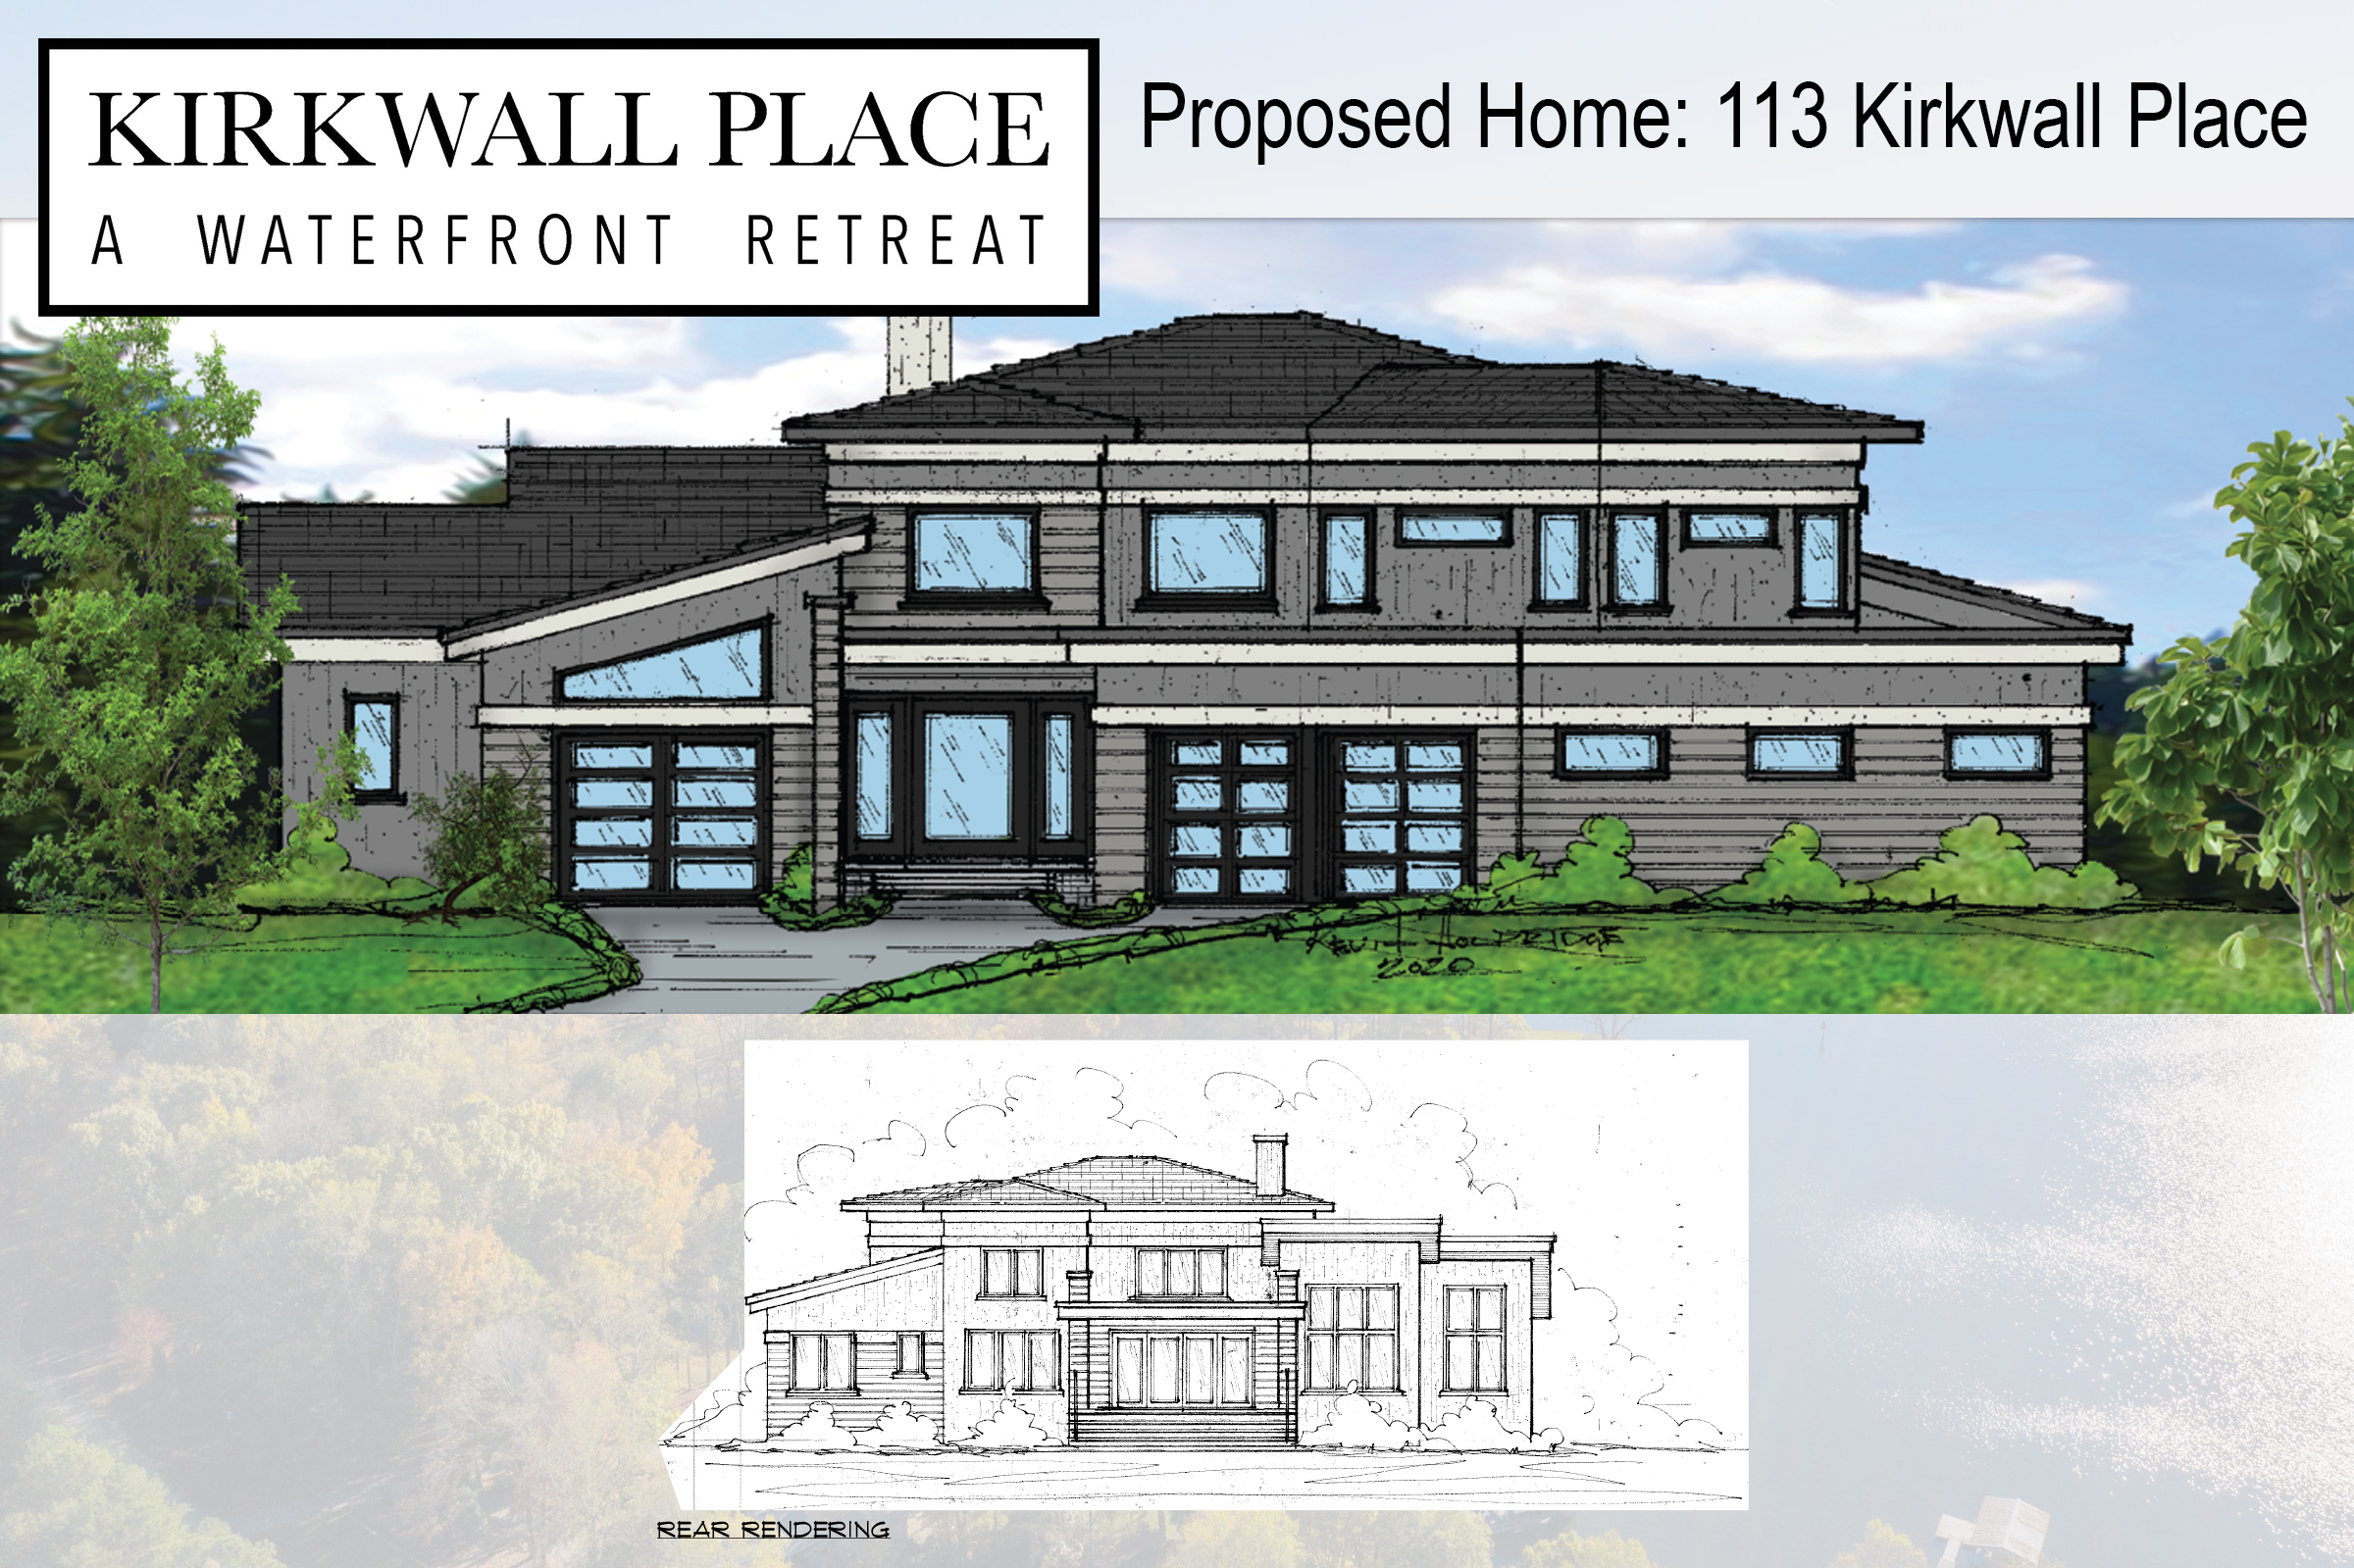 Rendering for Proposed Home - 113 Kirkwall Place